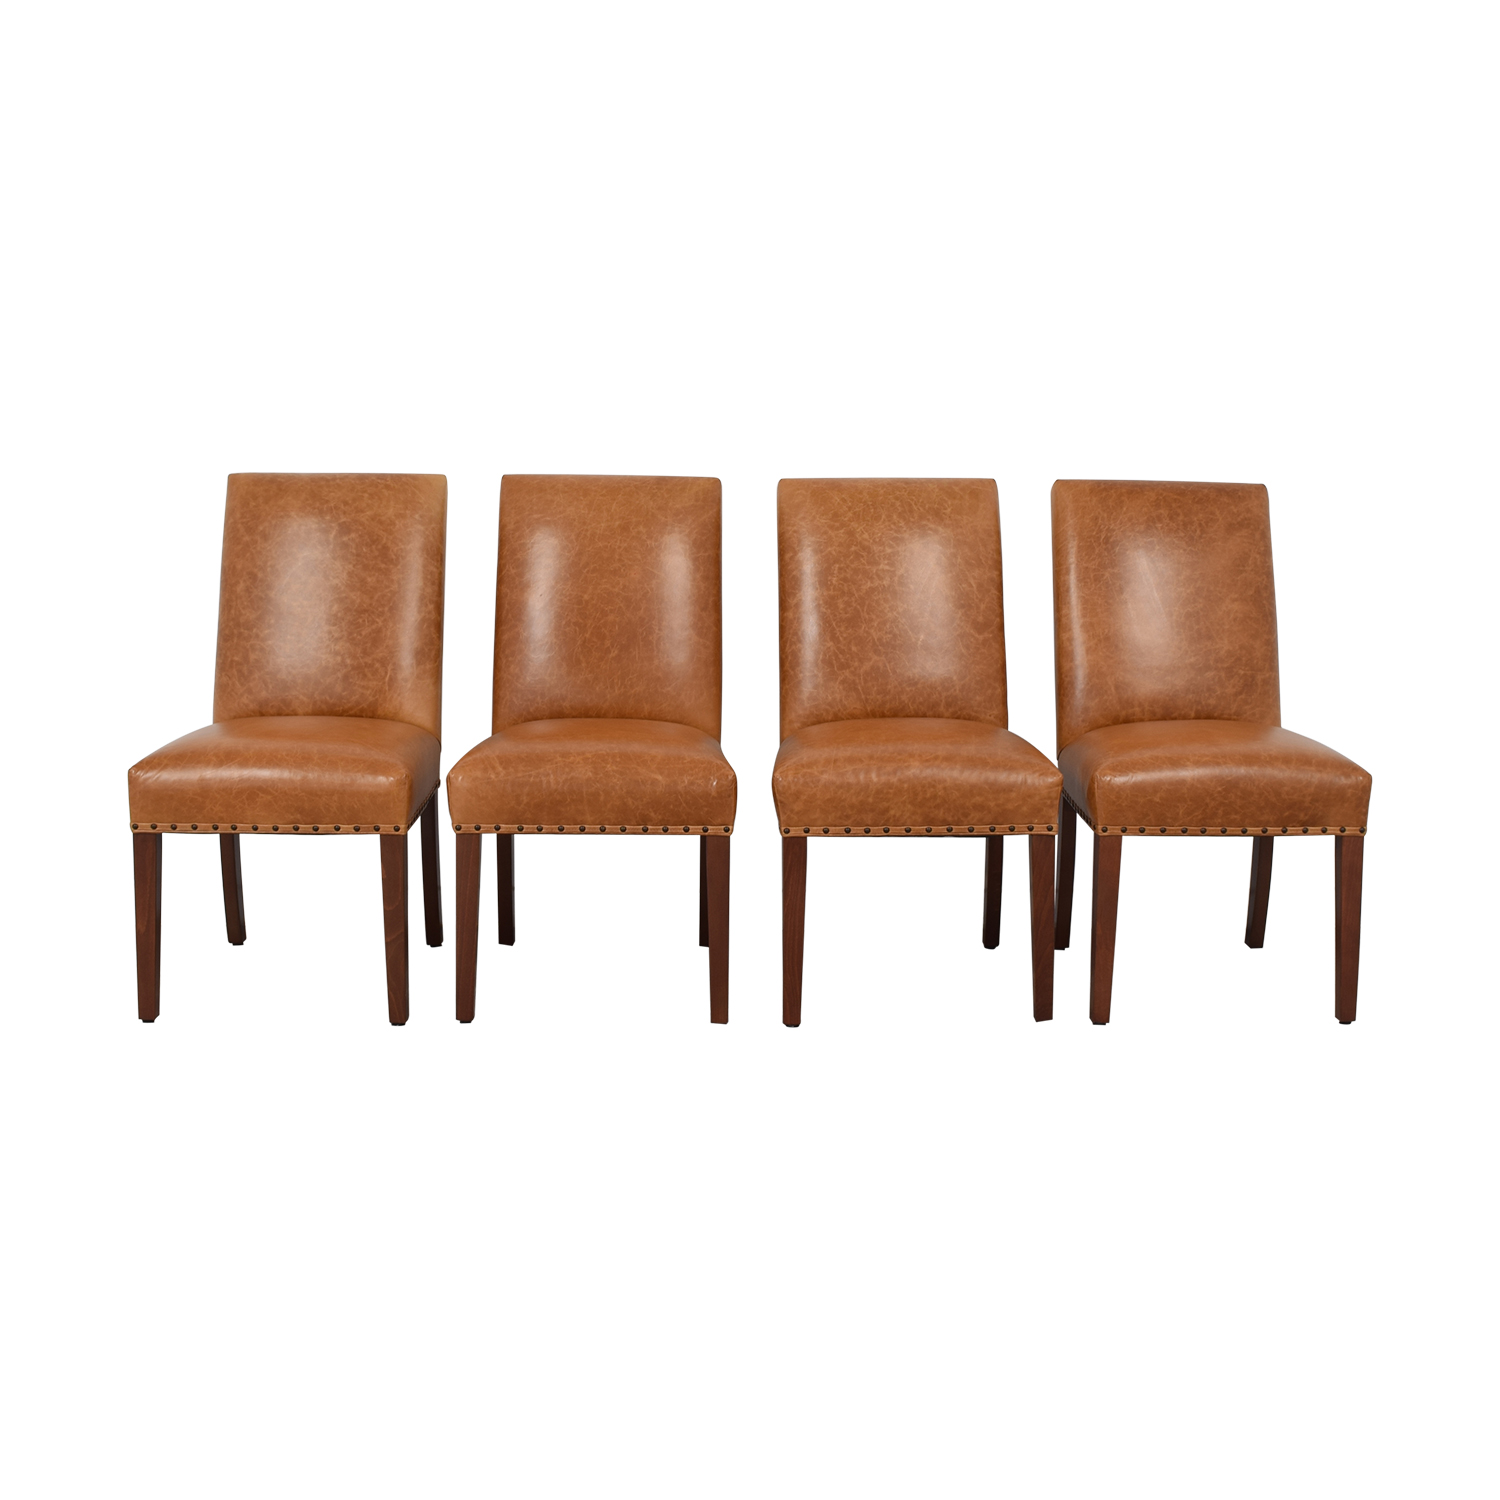 buy Ethan Allen Dining Chairs Ethan Allen